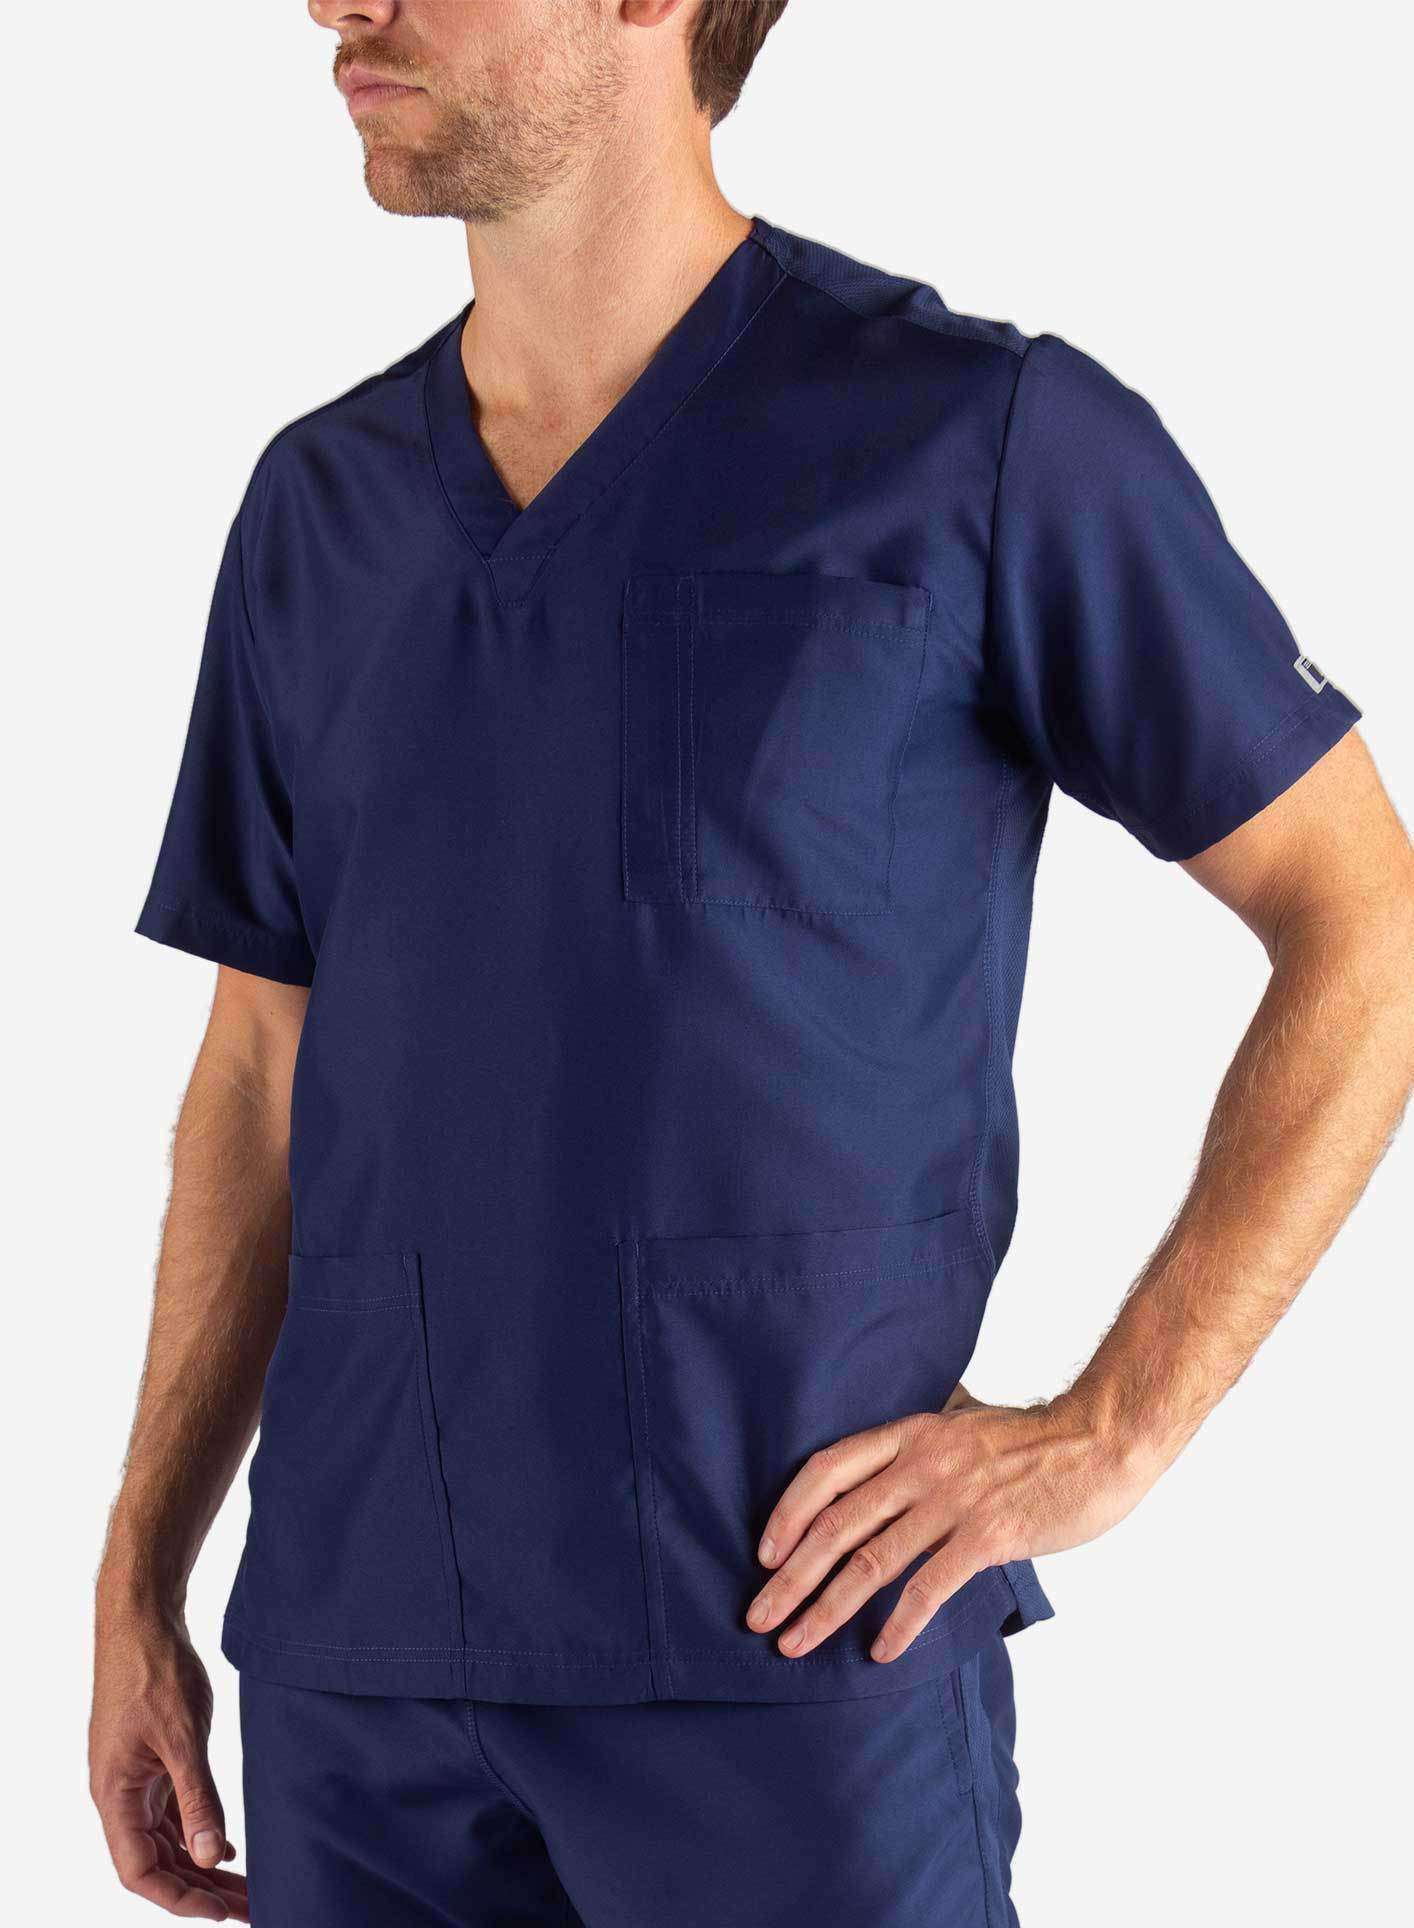 Men's 3 Pocket Scrub Top in Navy Blue Front